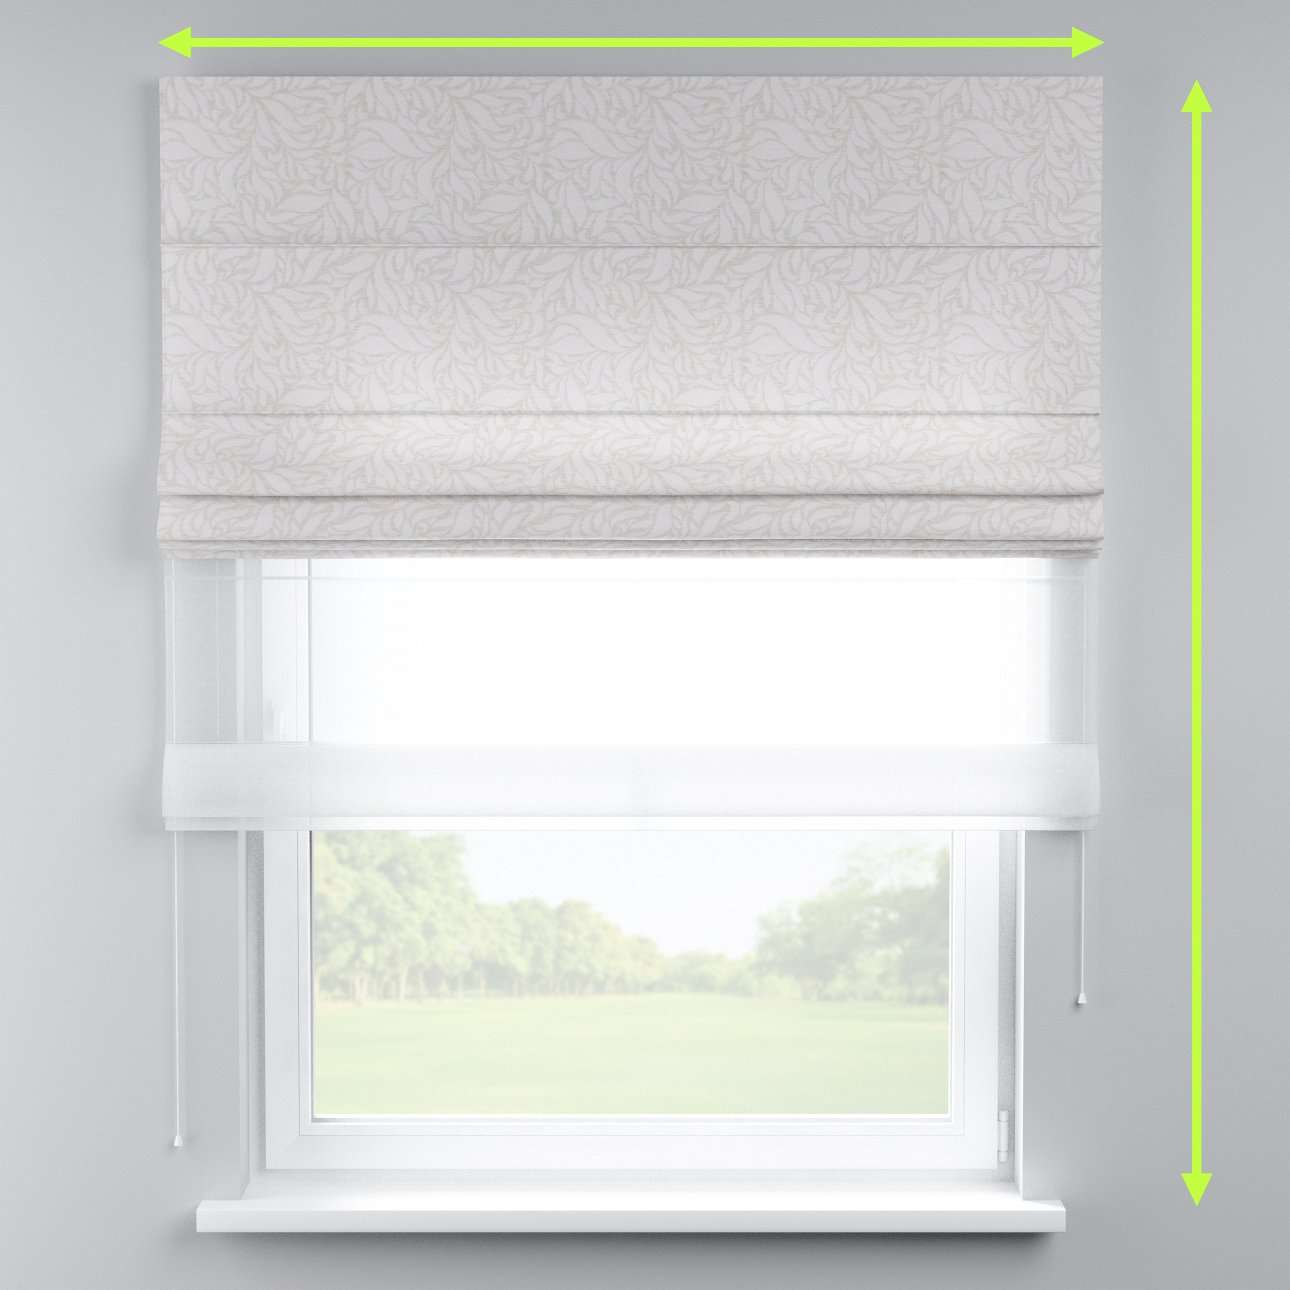 Voile and fabric roman blind (DUO II) in collection Venice, fabric: 140-50